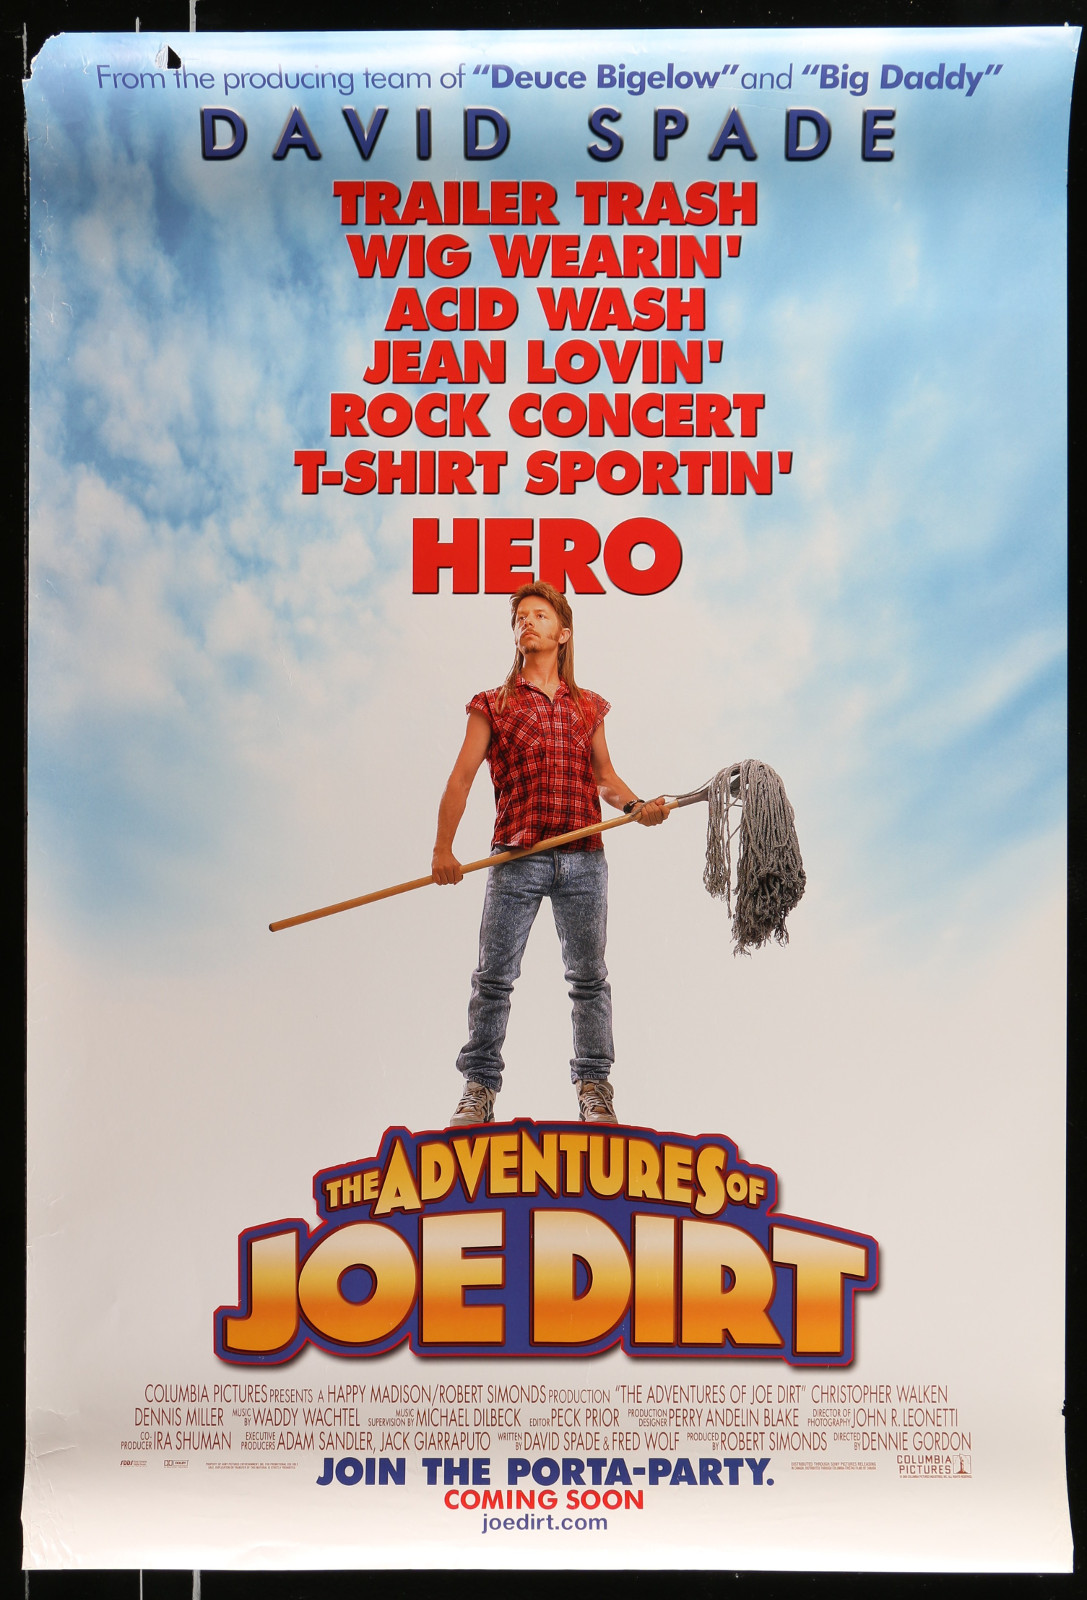 The Adventures Of Joe Dirt 2A413 A Part Of A Lot 20 Unfolded Mostly Double-Sided 27X40 One-Sheets '90S-00S Great Movie Images!